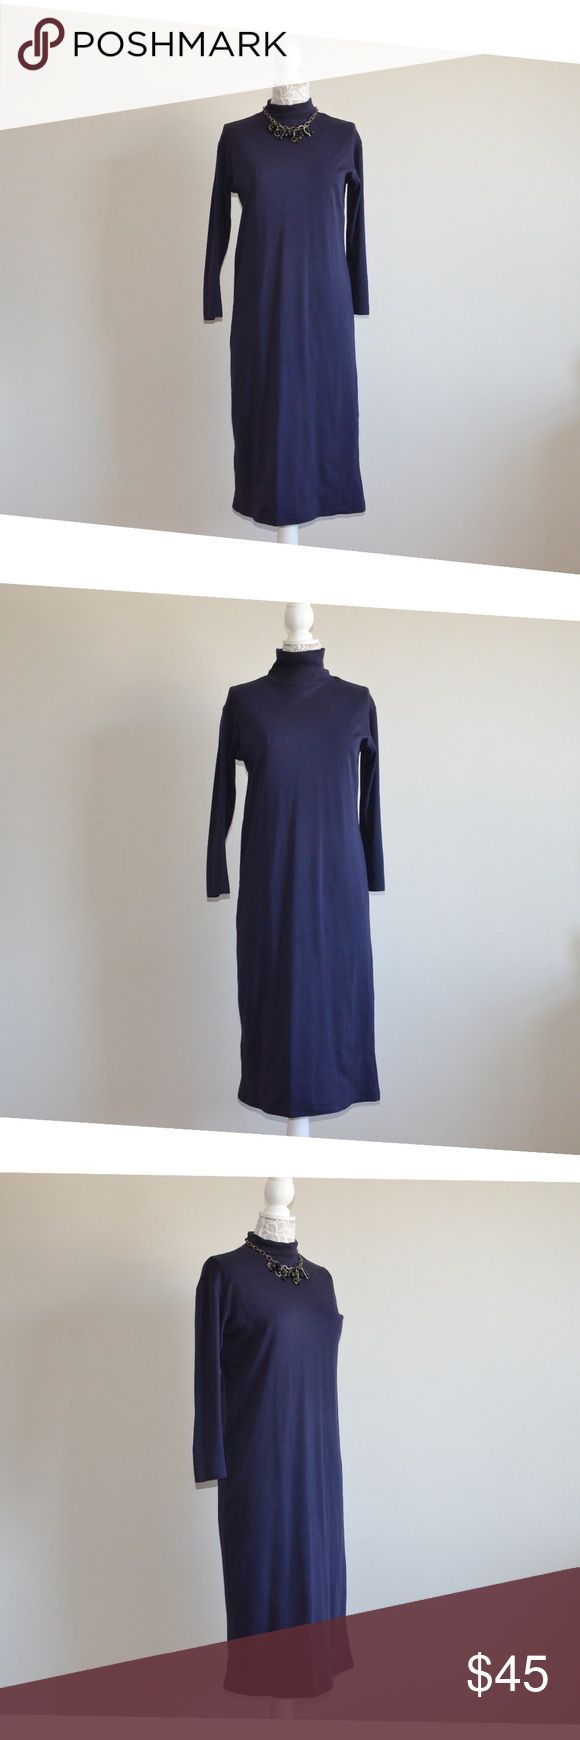 "Lands' End Turtle Neck Navy Blue Midi Dress Navy Blue Midi Dress by Lands' End  Excellent condition.  Length approx. 46"" Wide (underarms) approx. 19""  Size: Regular XS Fabric: 100% Cotton Made in USA  RN 62830 910 21966  Color: Navy Blue Turtle neck No lining  Tags: Lands End, LandsEnd, Lands' End Dresses Midi"